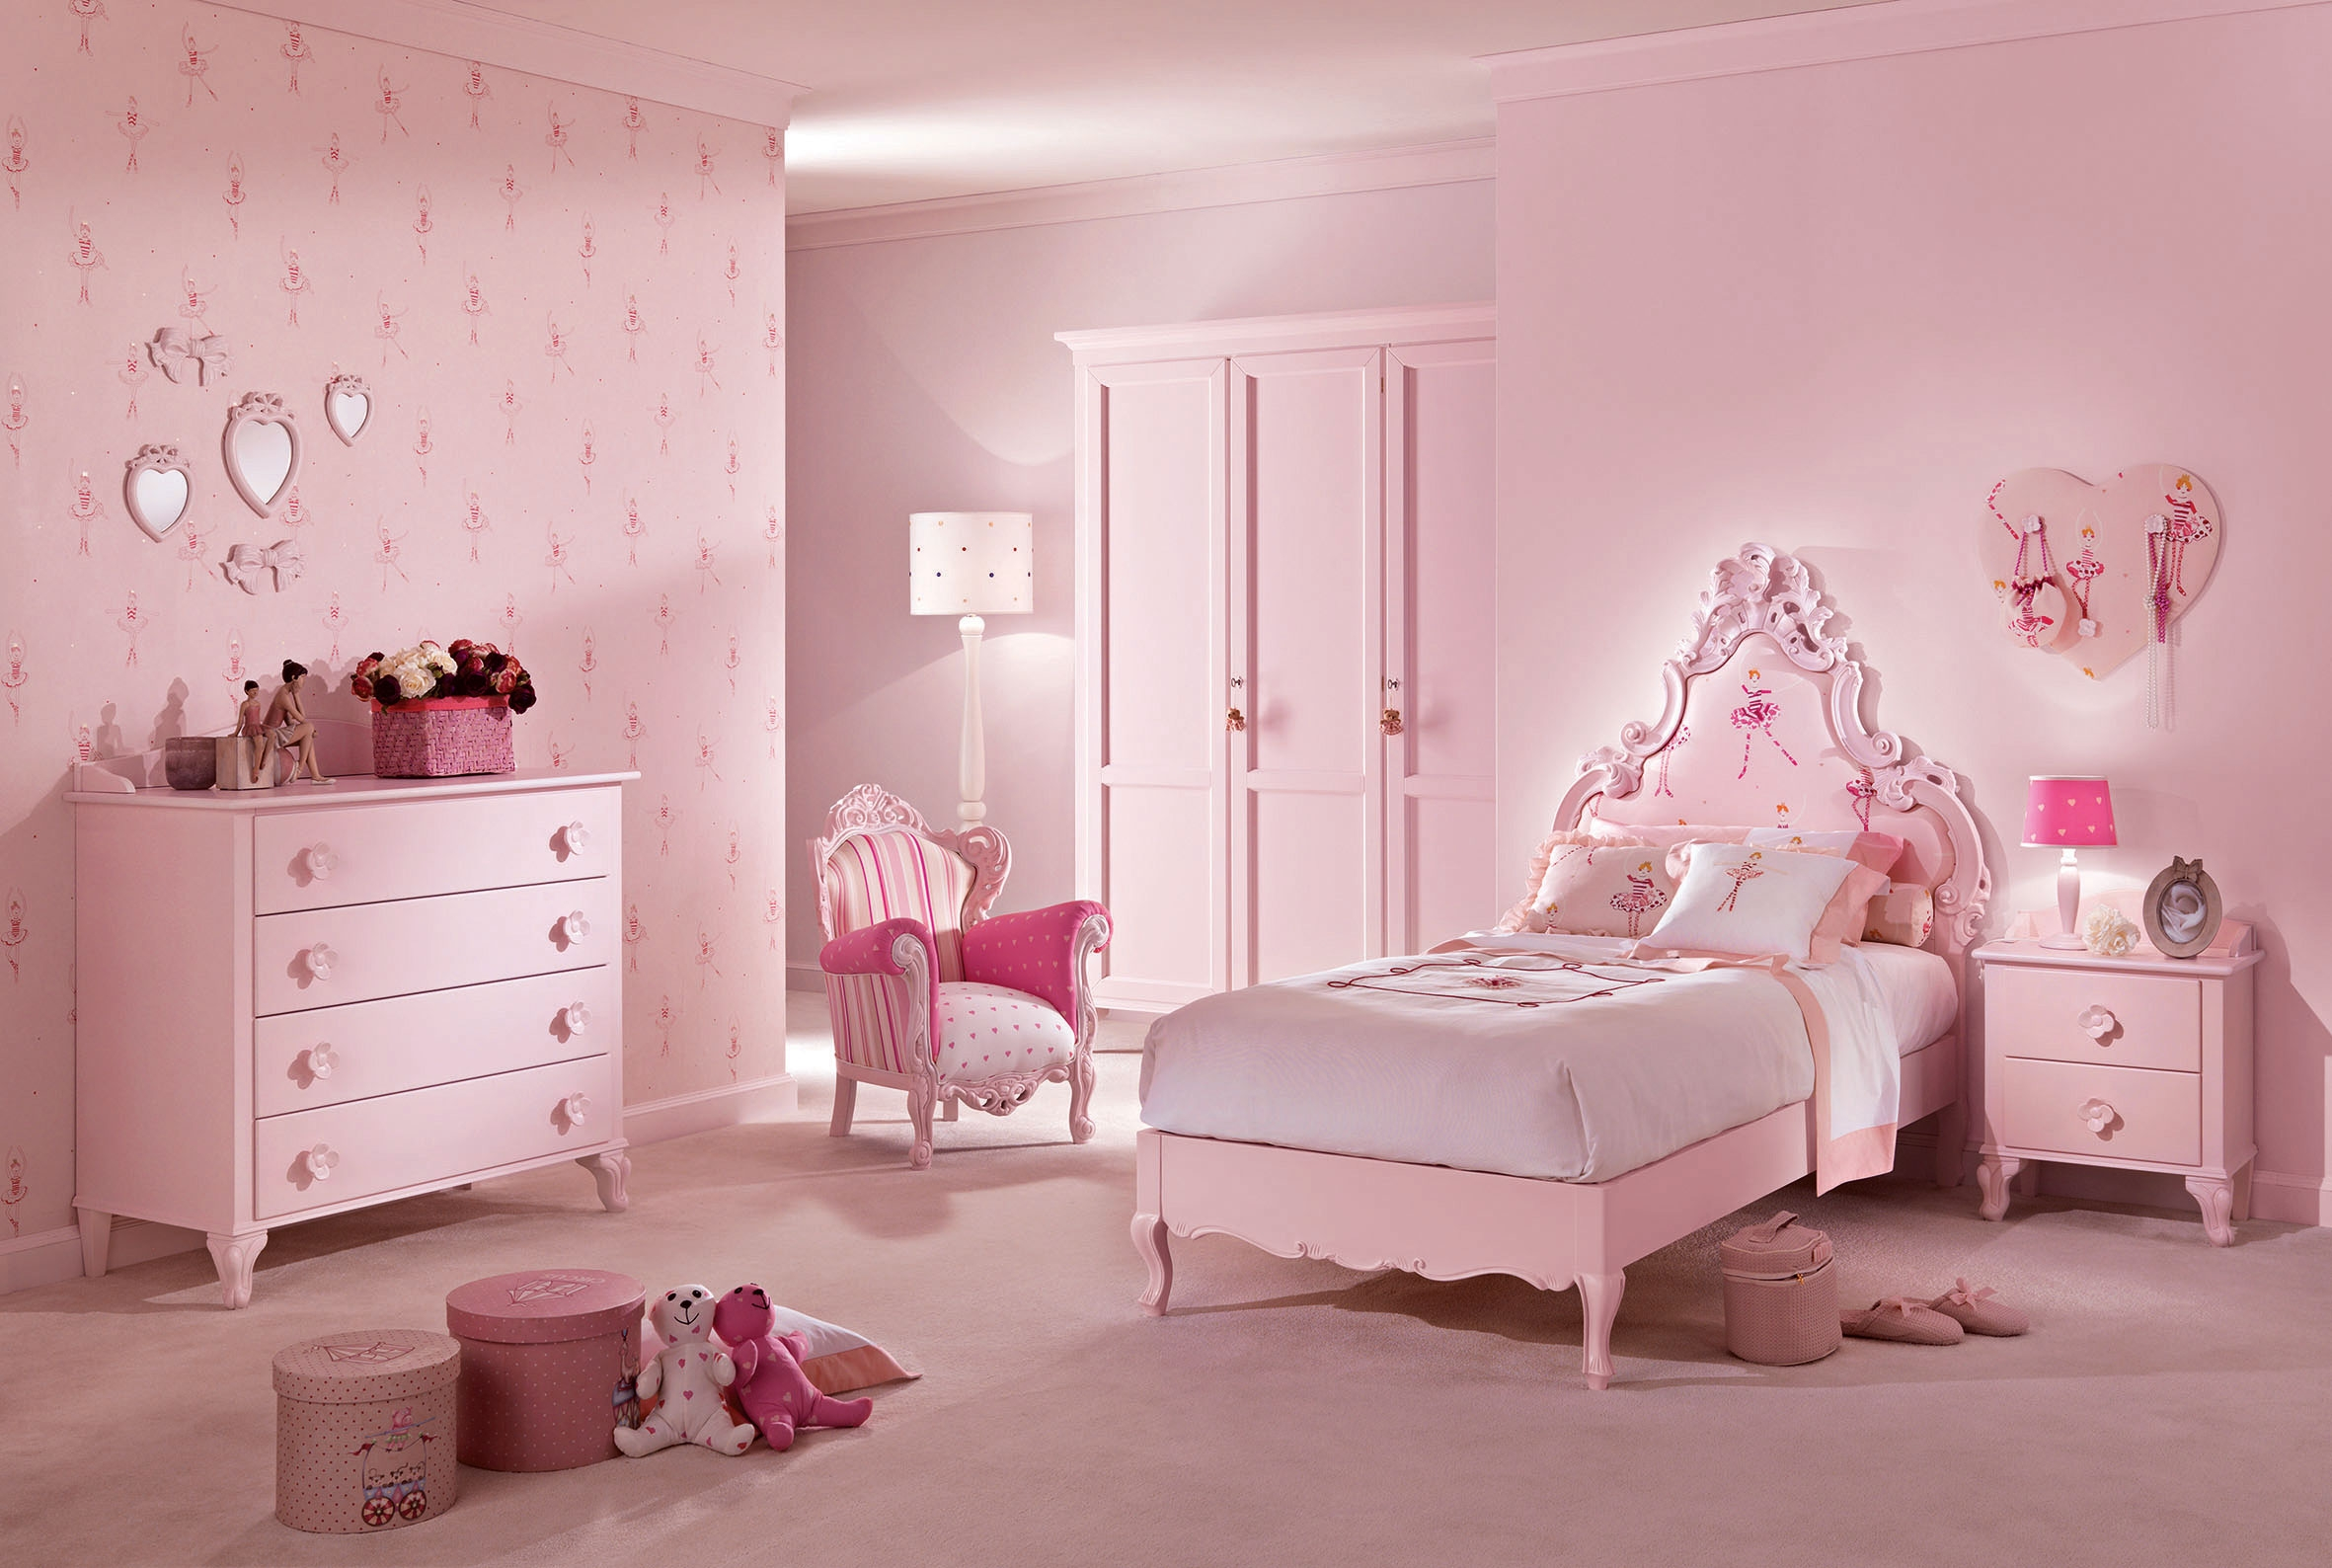 lit princesse. Black Bedroom Furniture Sets. Home Design Ideas